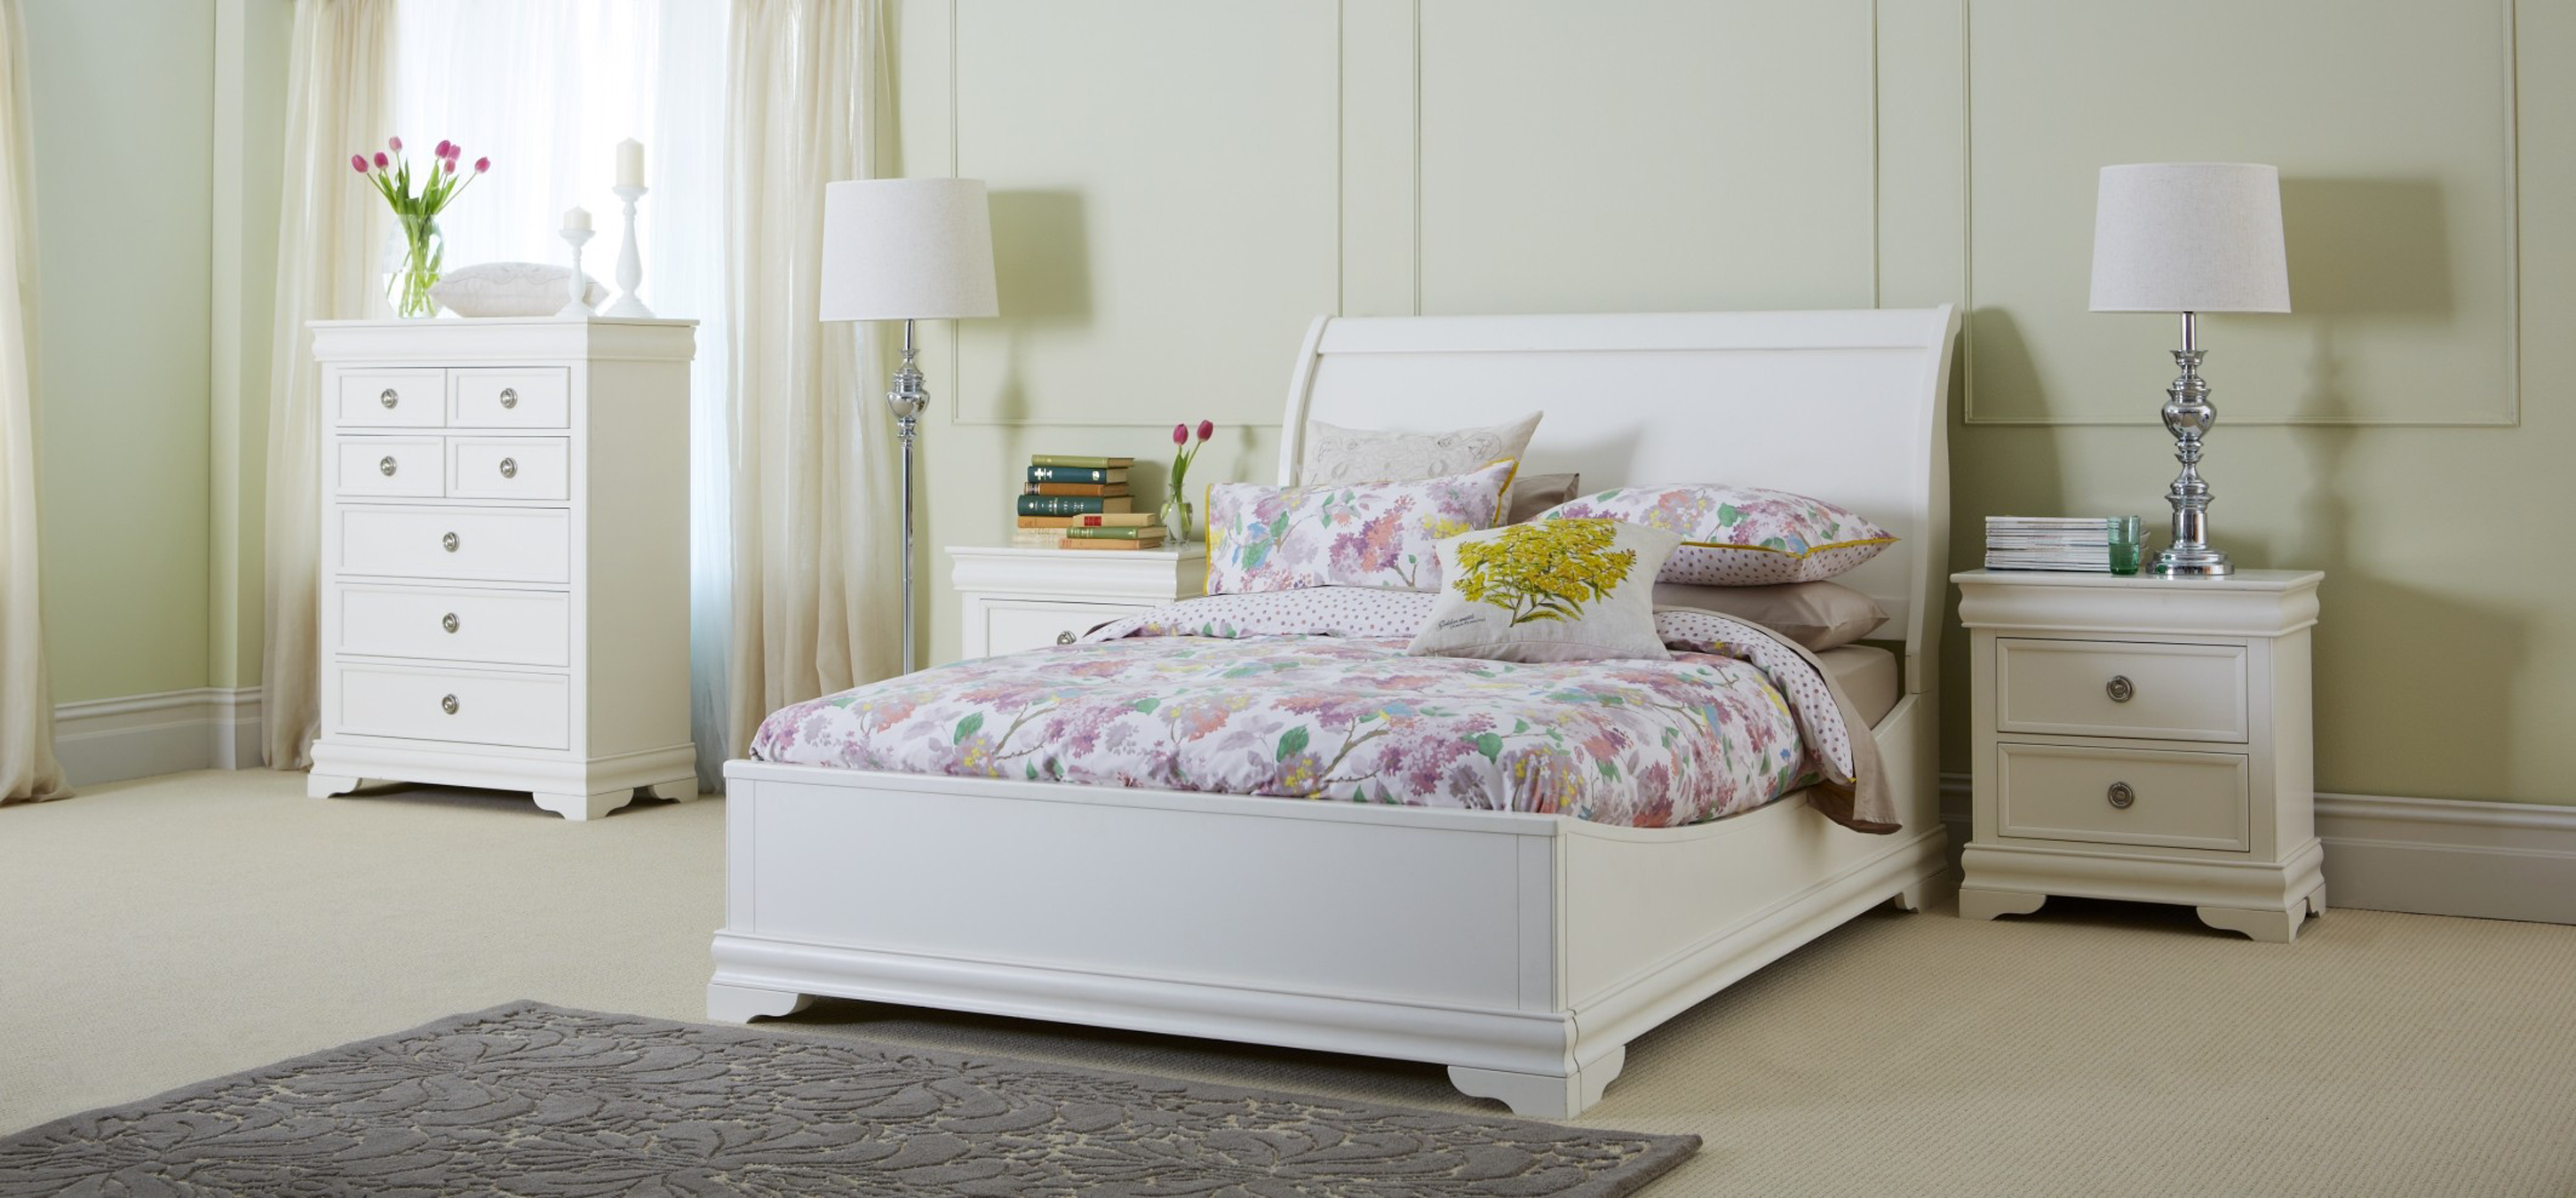 Solid wood bedroom furniture for kids 20 tips for best for Where to buy quality bedroom furniture